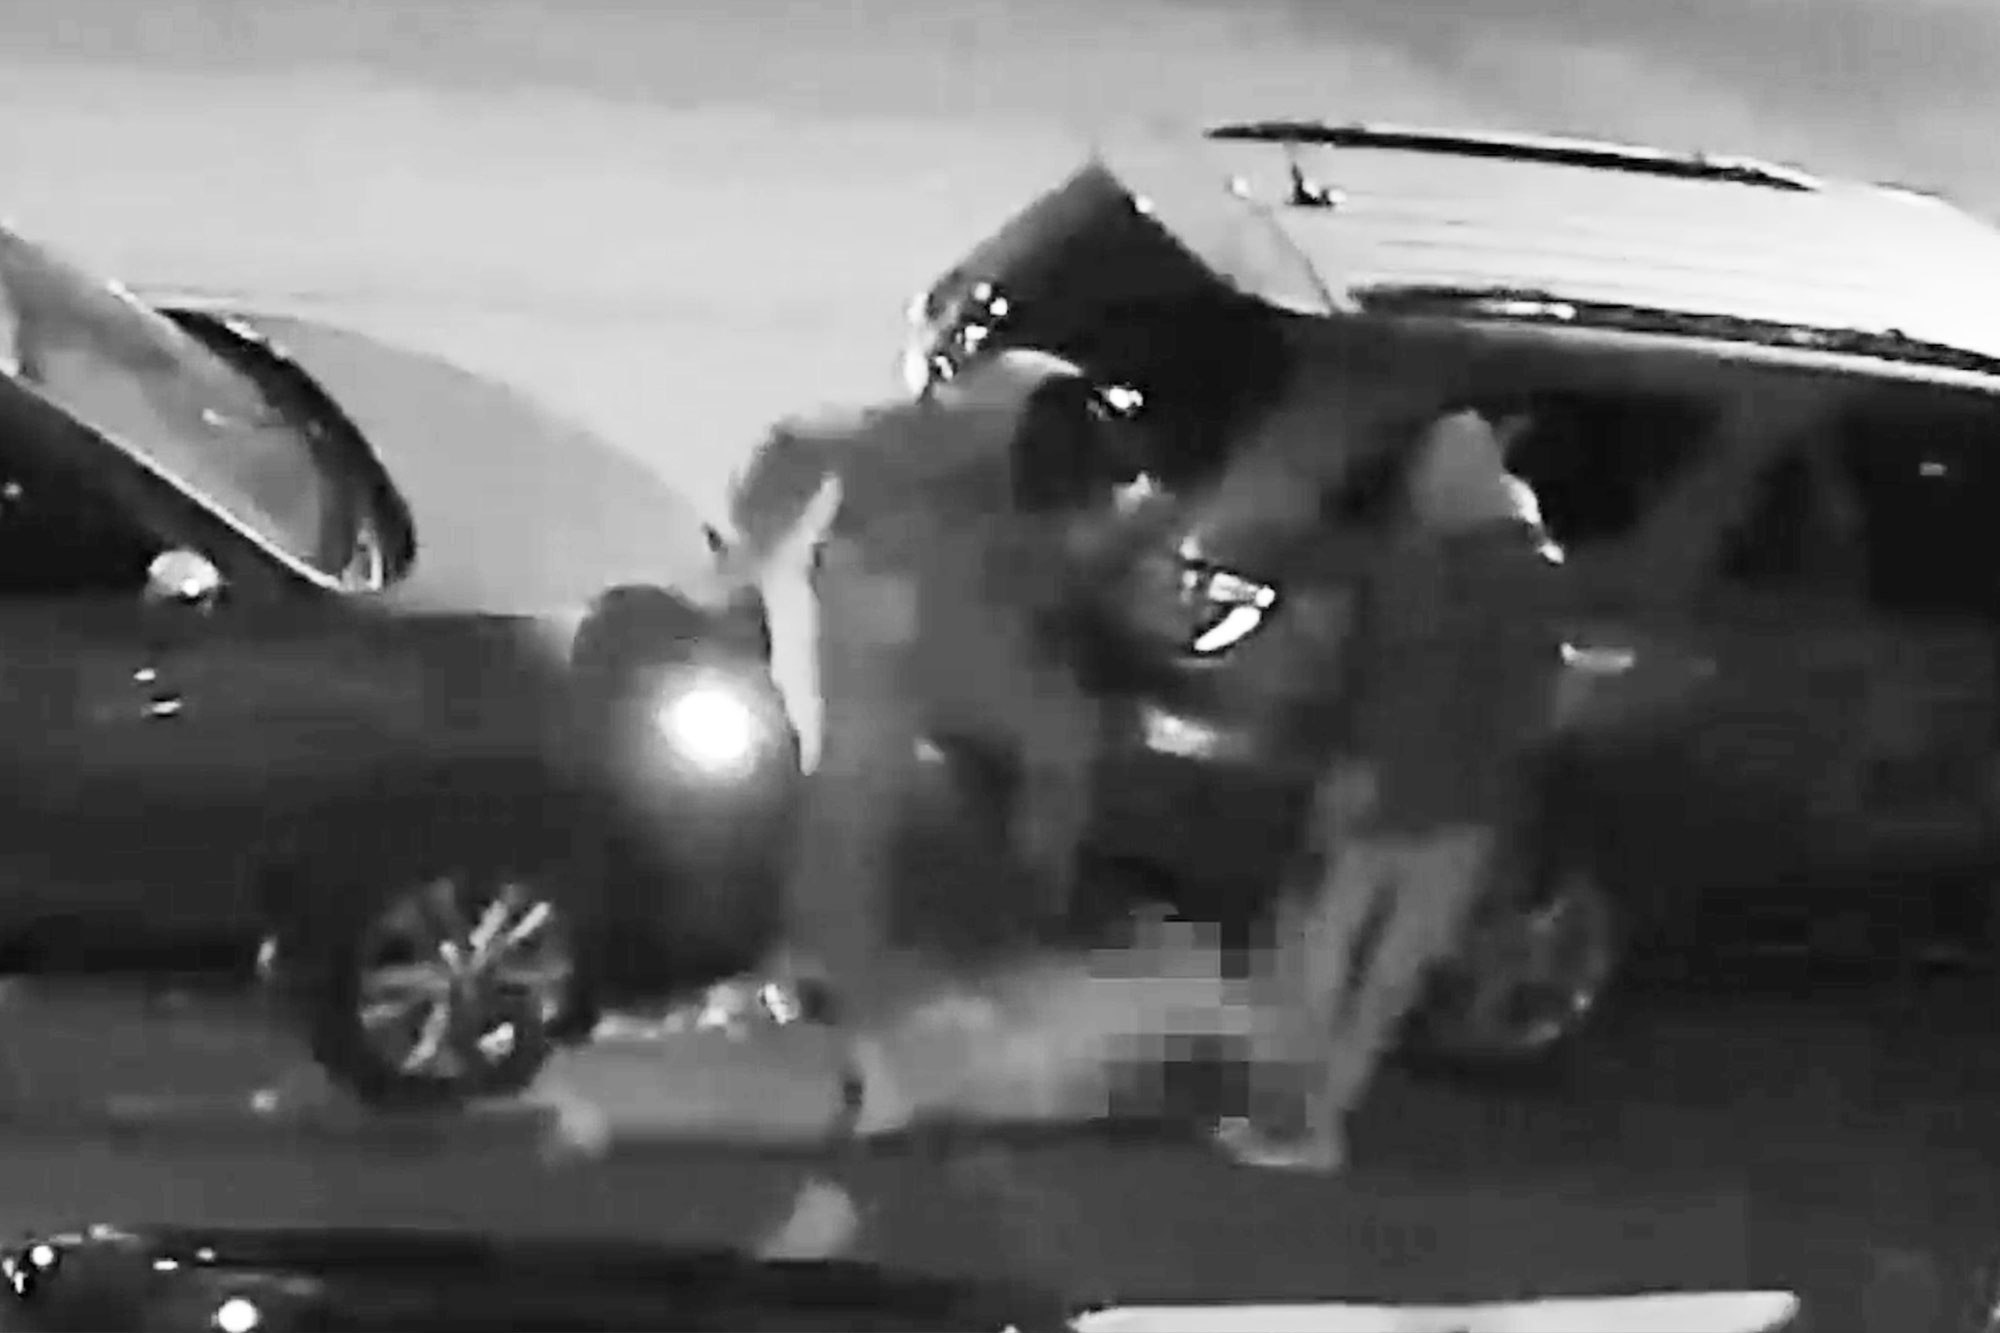 Man viciously attacked during Bronx robbery